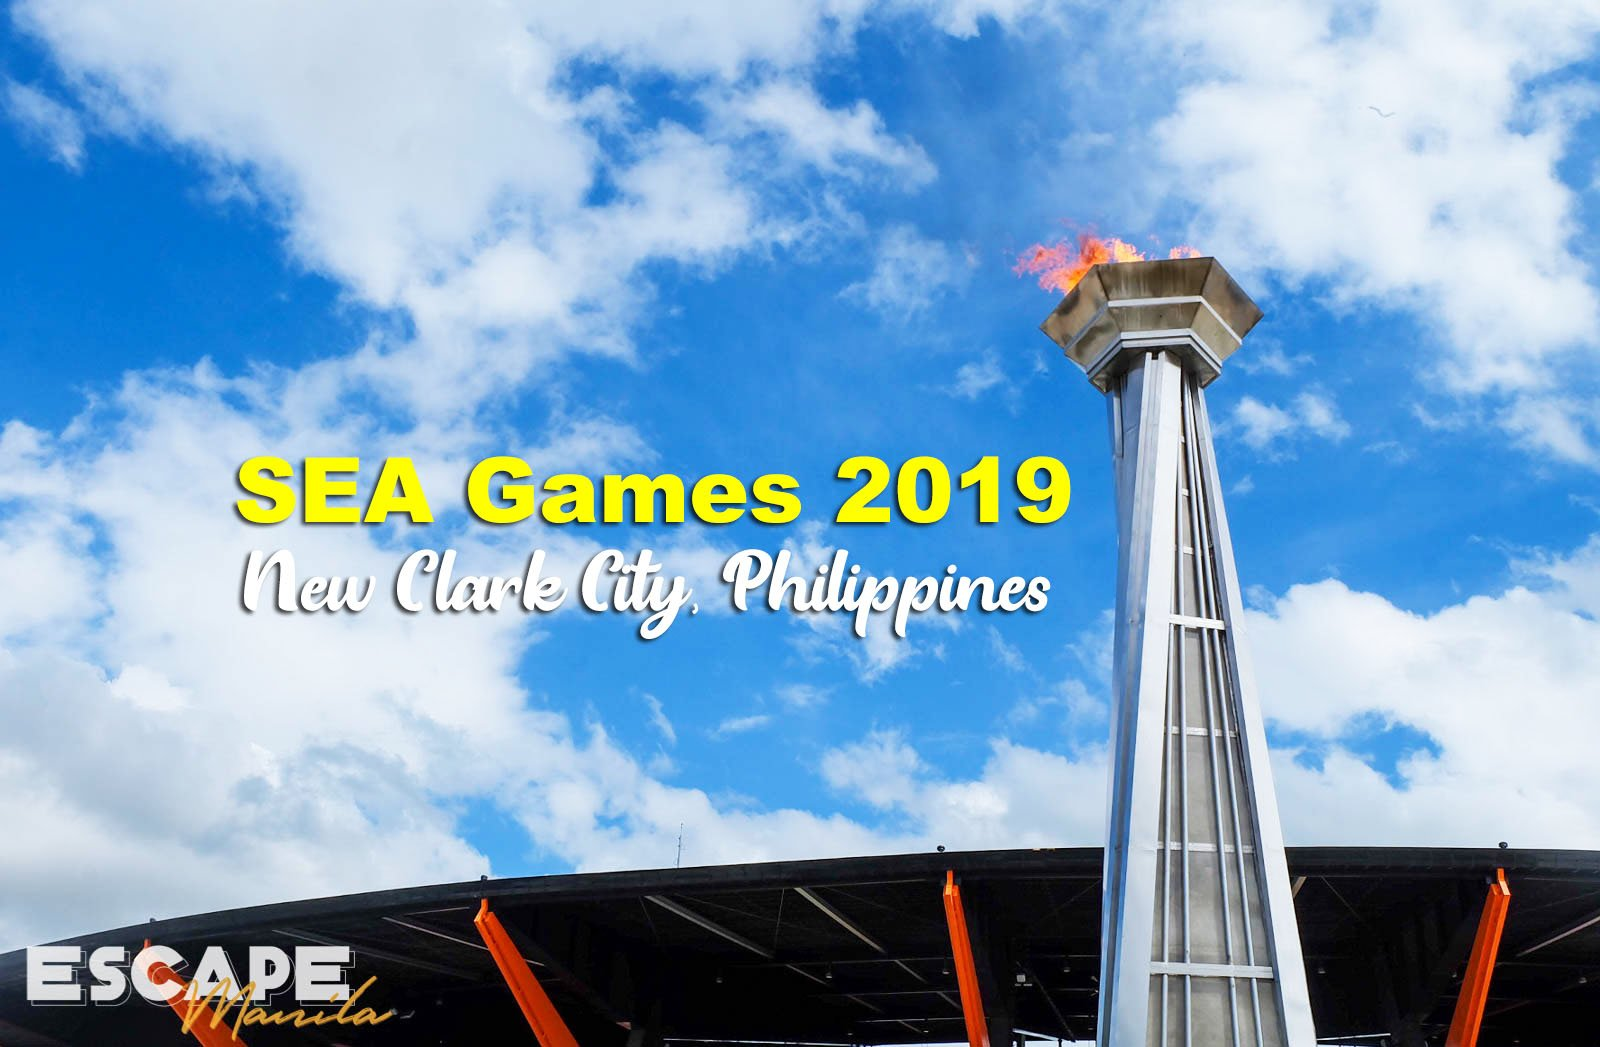 SEA Games 2019 FREE Shuttle Schedule: SM Clark to New Clark City